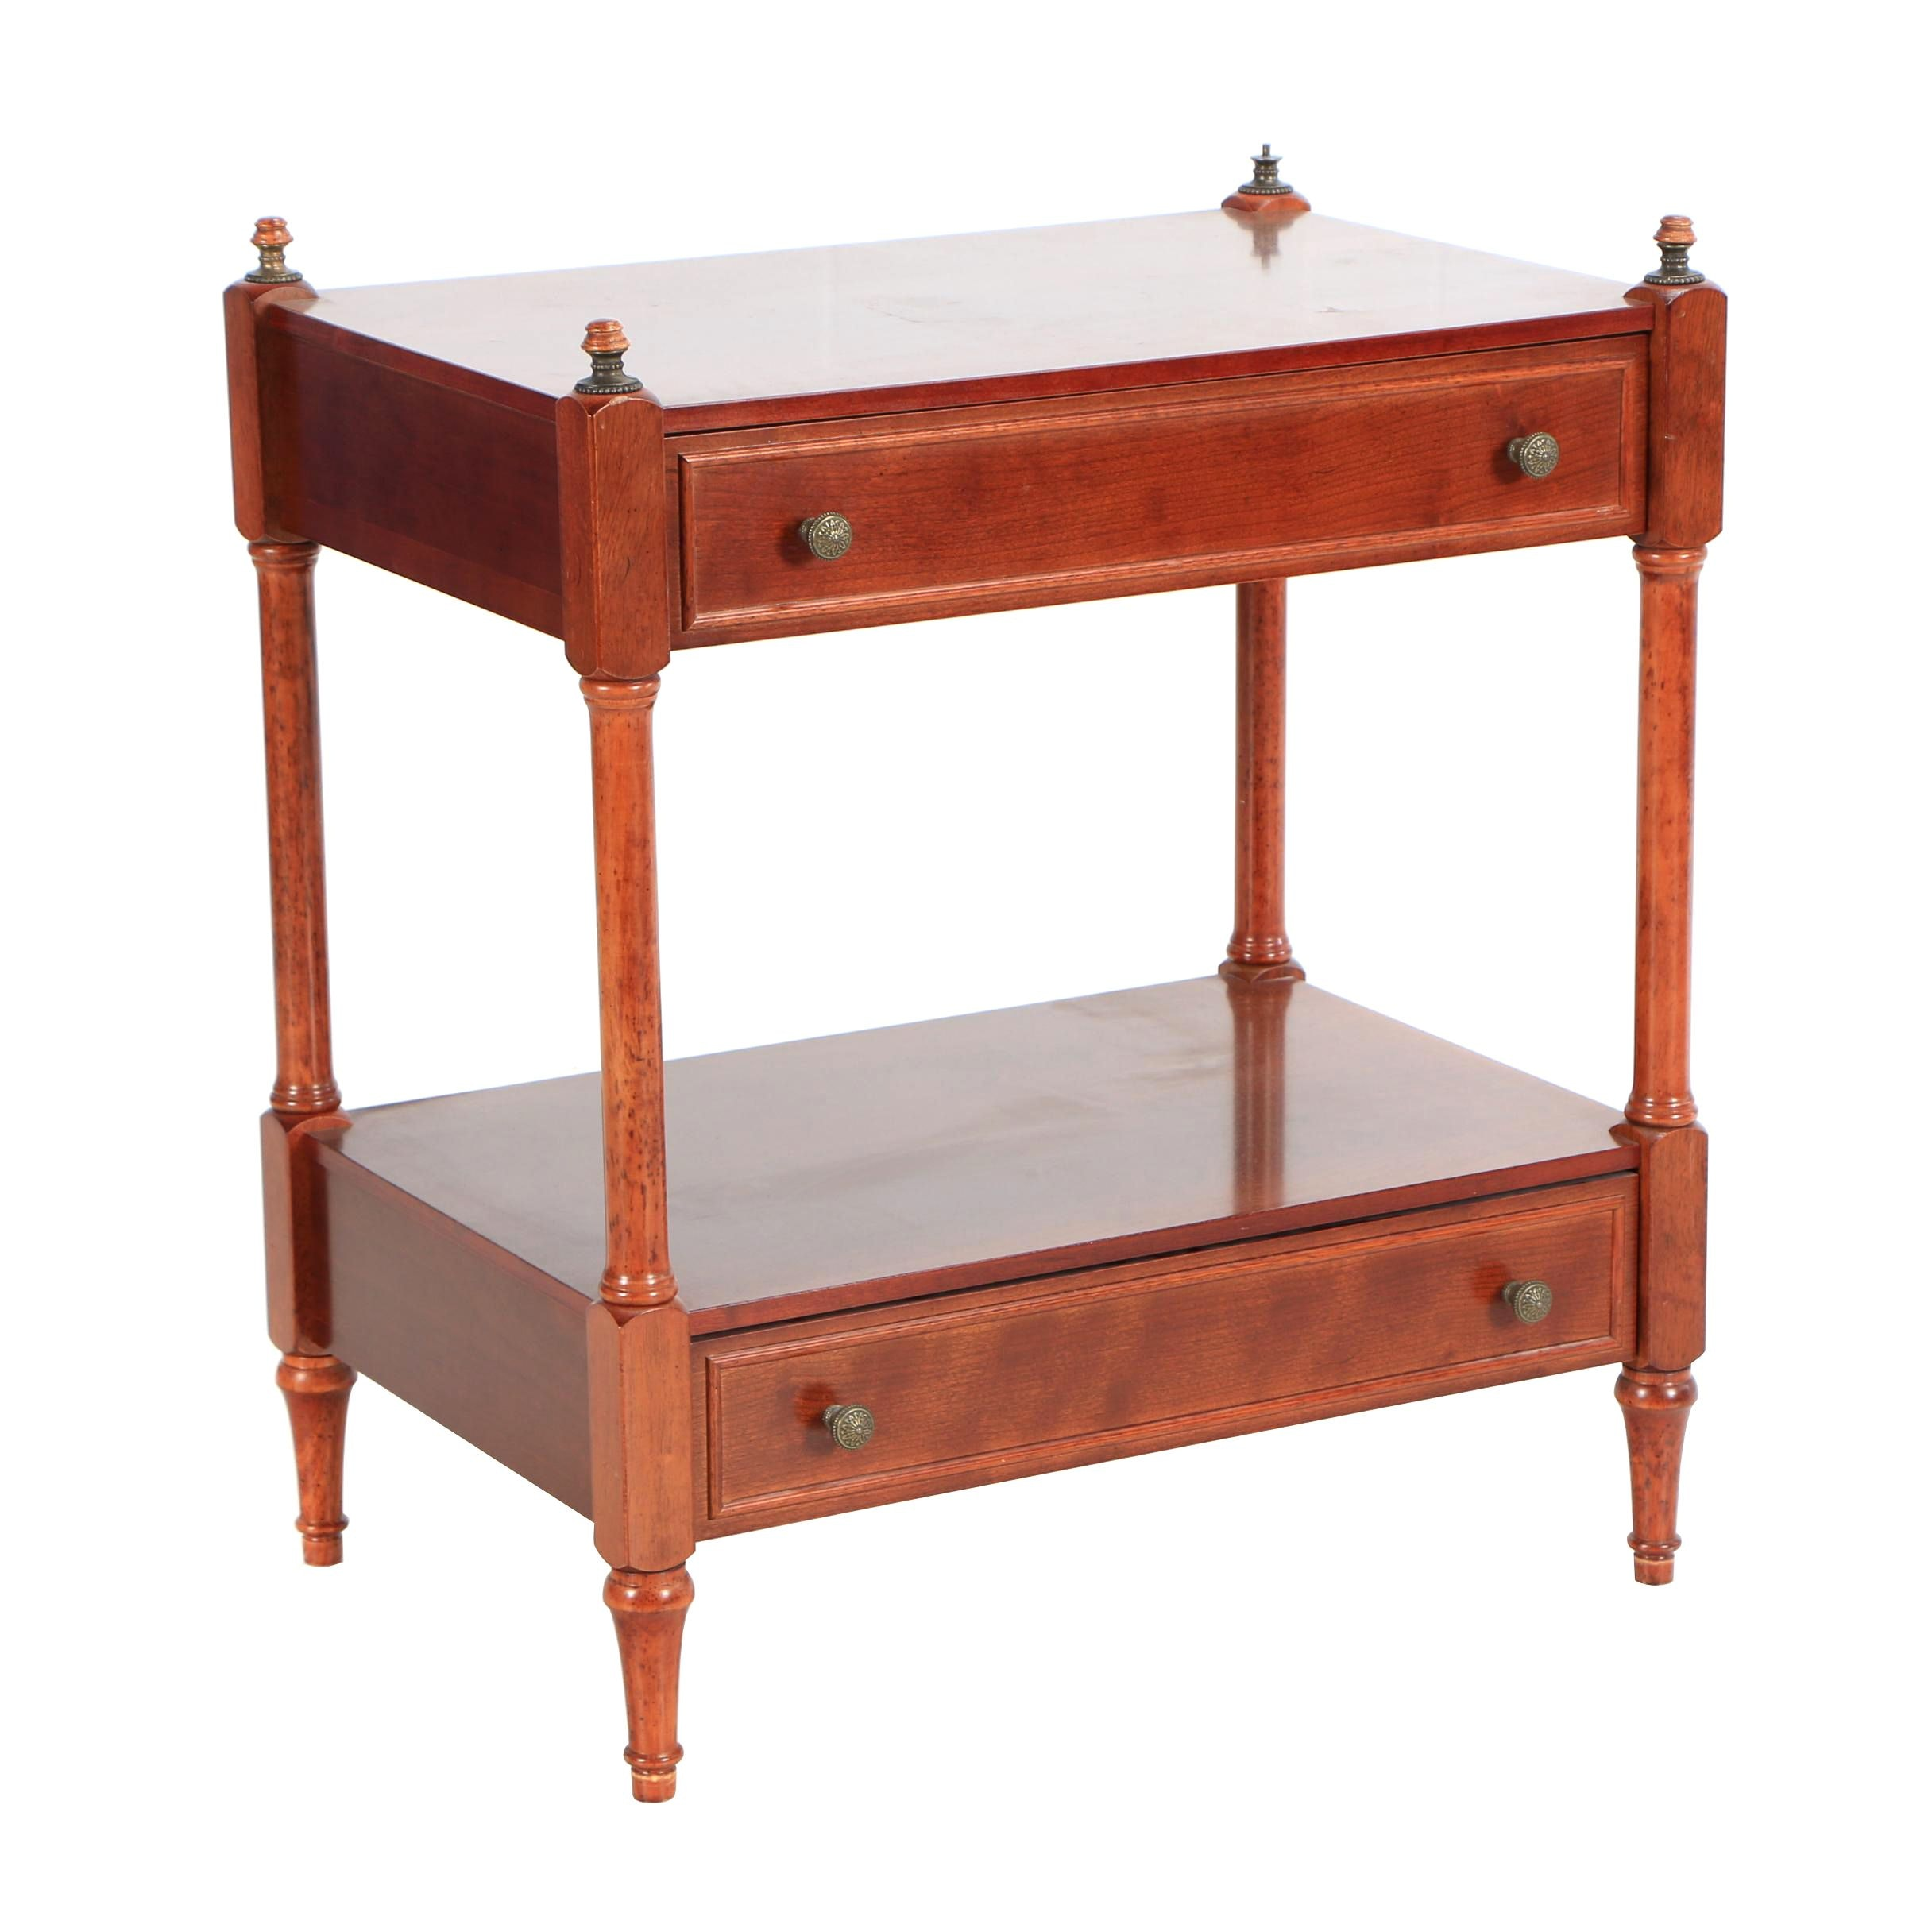 The Bombay Company Stained Wood Console Table